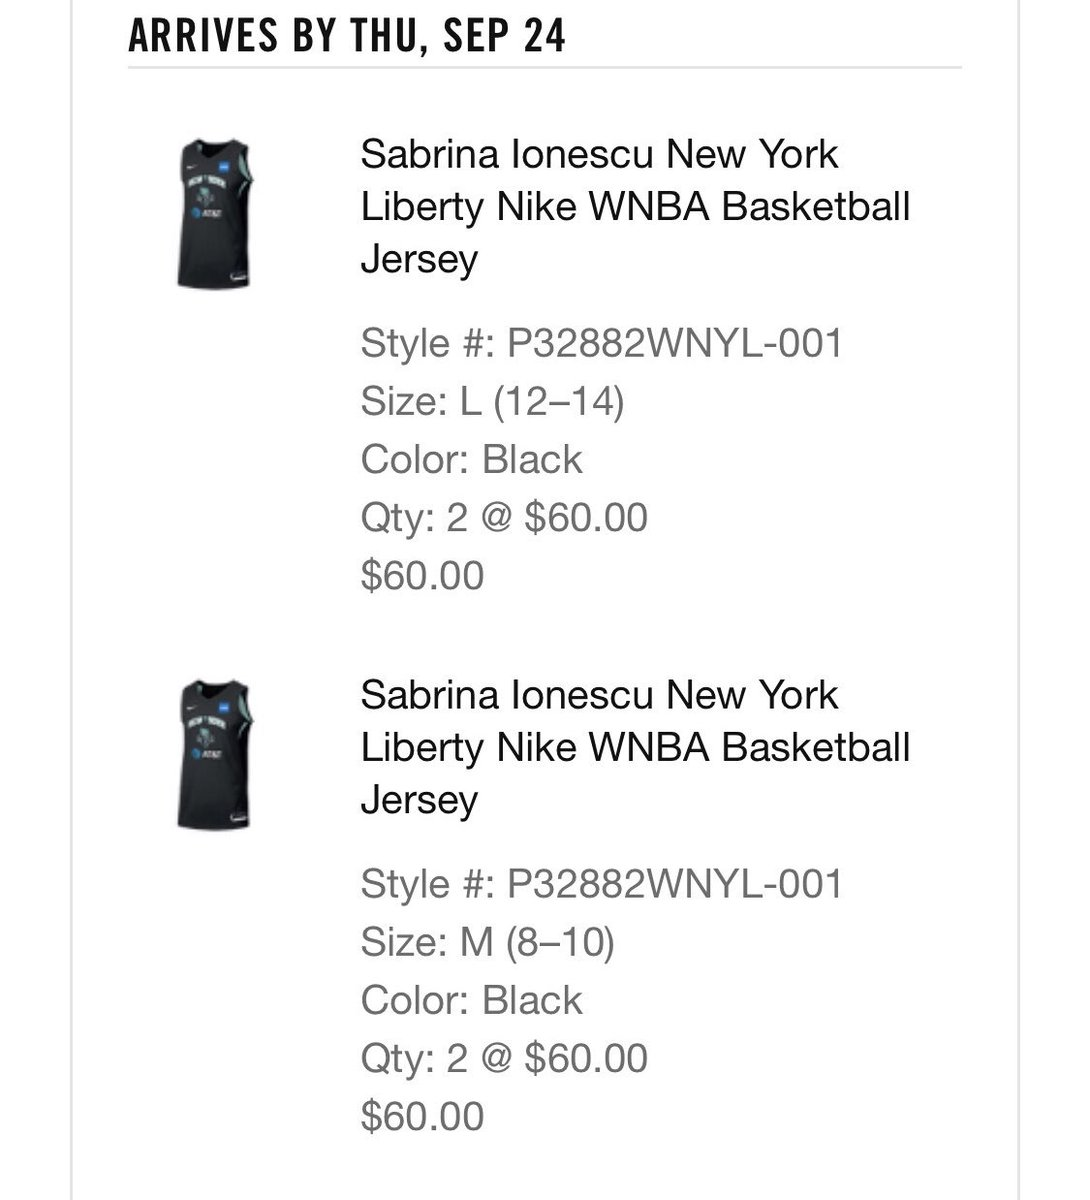 Just grabbed my @sabrina_i20 @nyliberty Jersey plus a few more  at https://t.co/Pz10WcAYZf If you are a fan hoops this is a must purchase for you and your little hoopers, make or female #franchise @NikeGirlsEYBL @NikeEYB #franchise https://t.co/T13PmQZlRj